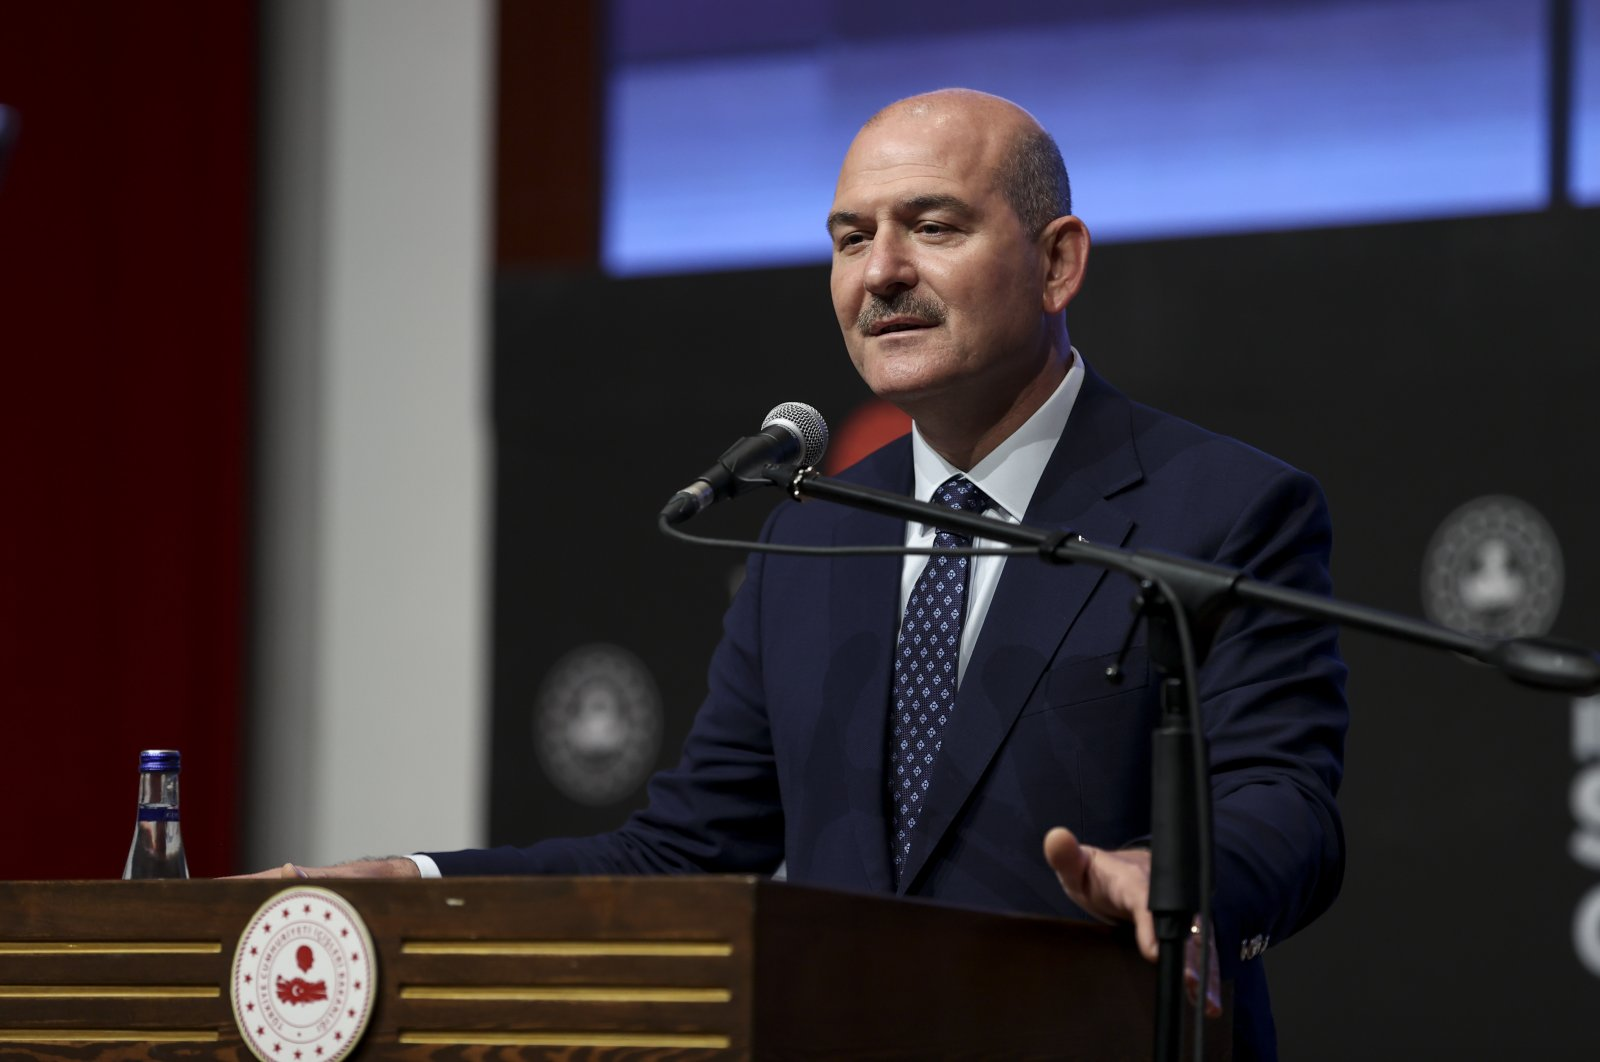 Interior Minister Süleyman Soylu speaks at a security and intelligence meeting, Sept. 23, 2021. (AA Photo)